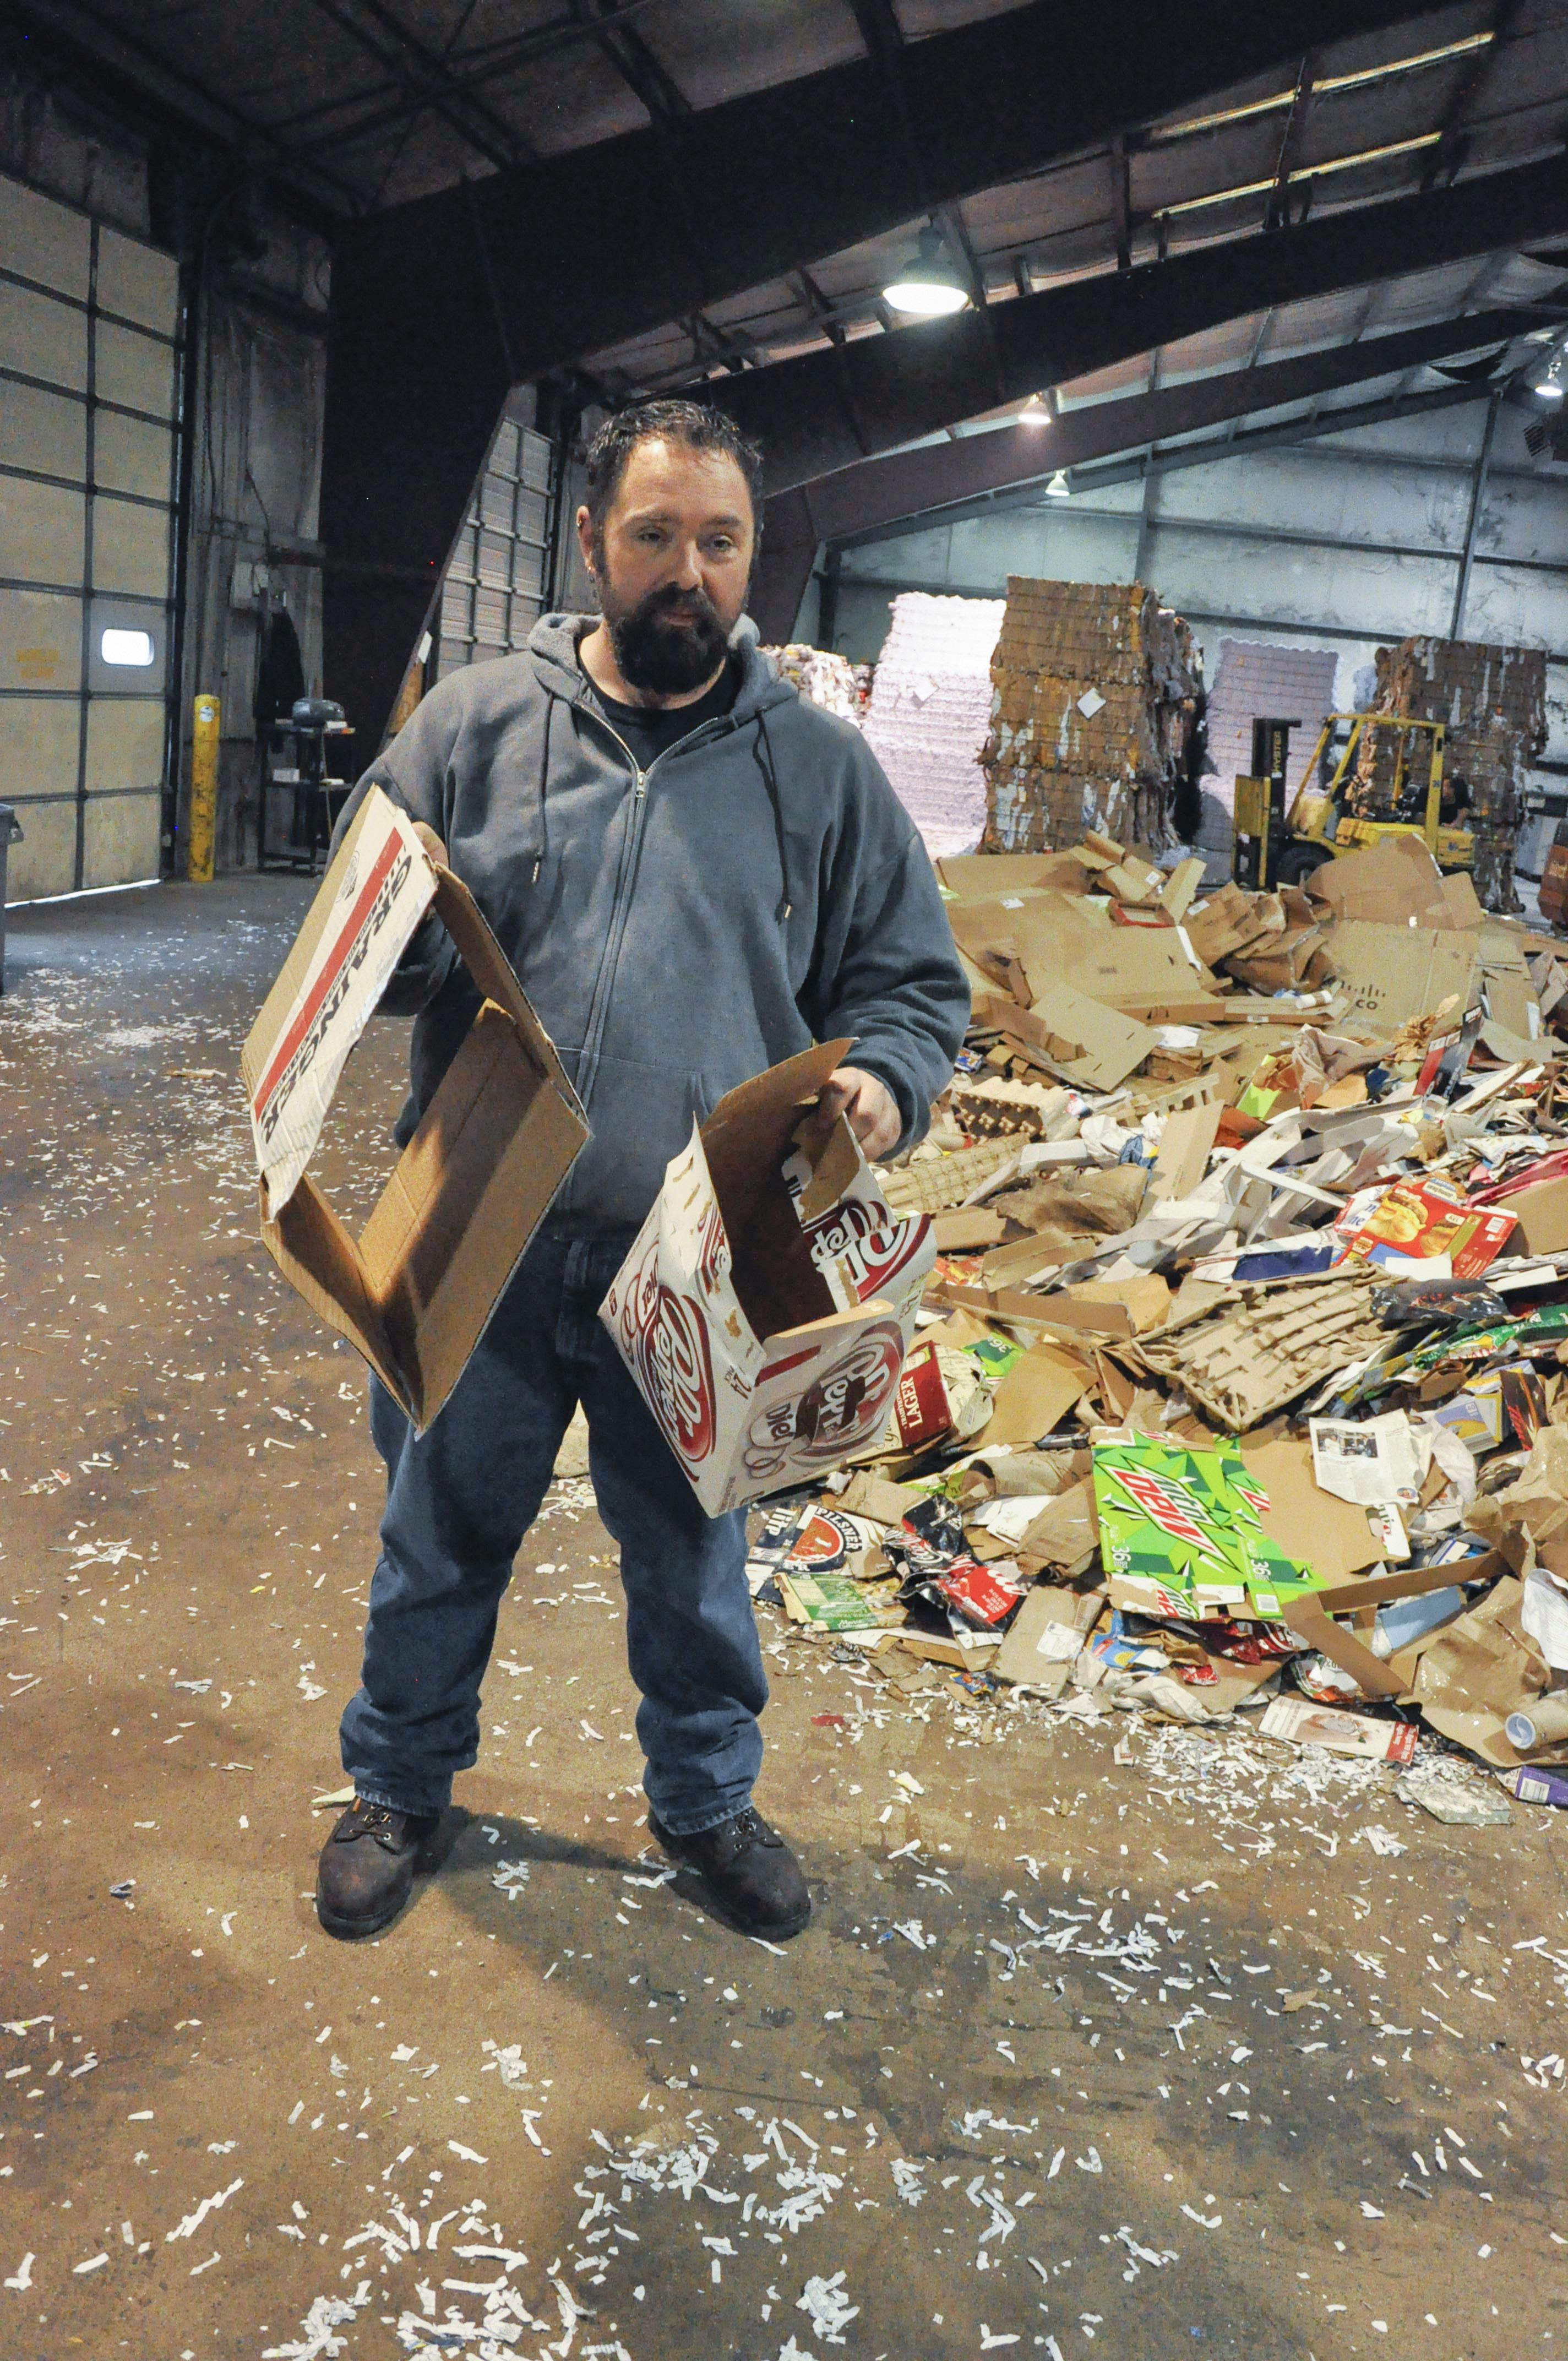 WRIGHT PATTERSON RECYCLE CENTER REDUCE REUSE THEN RECYCLE